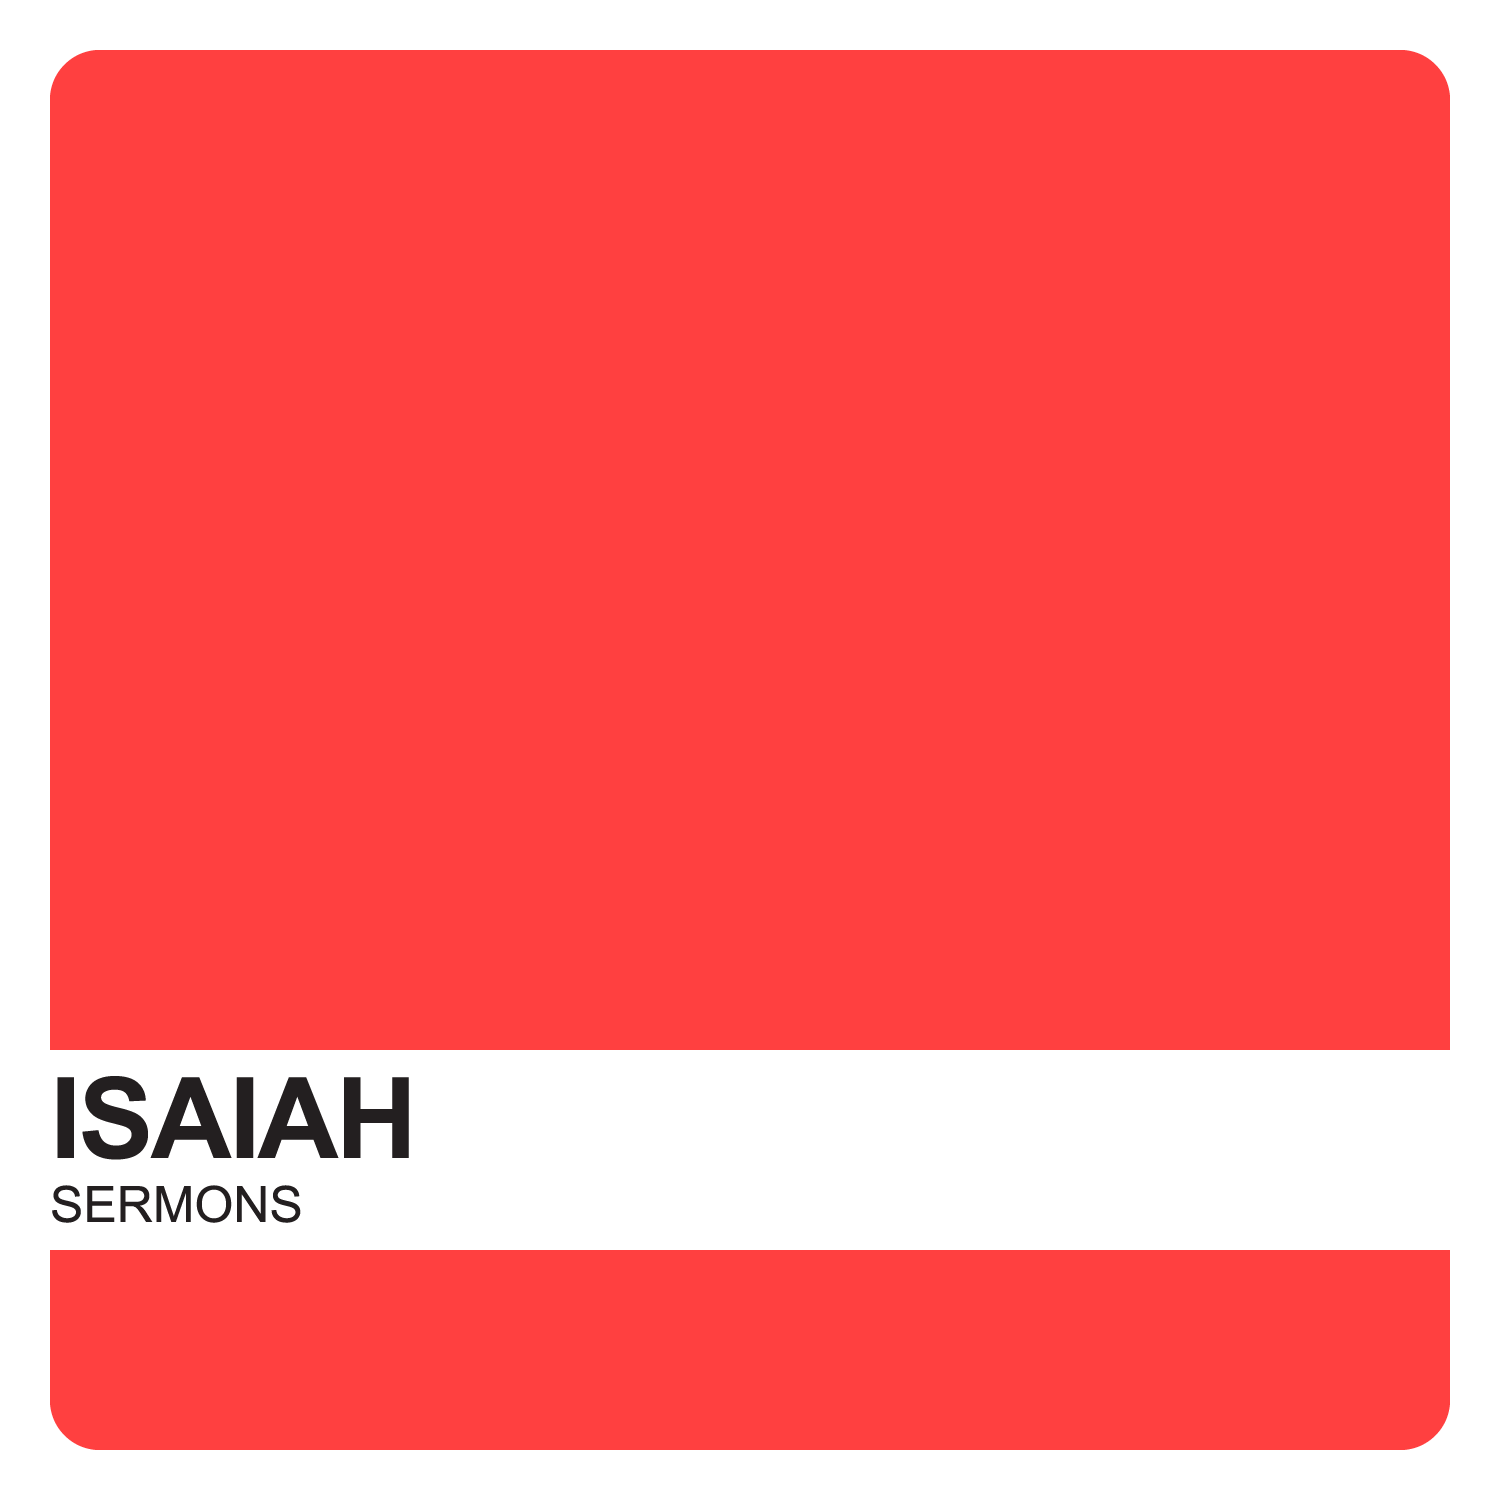 Isaiah Sermons – Covenant United Reformed Church